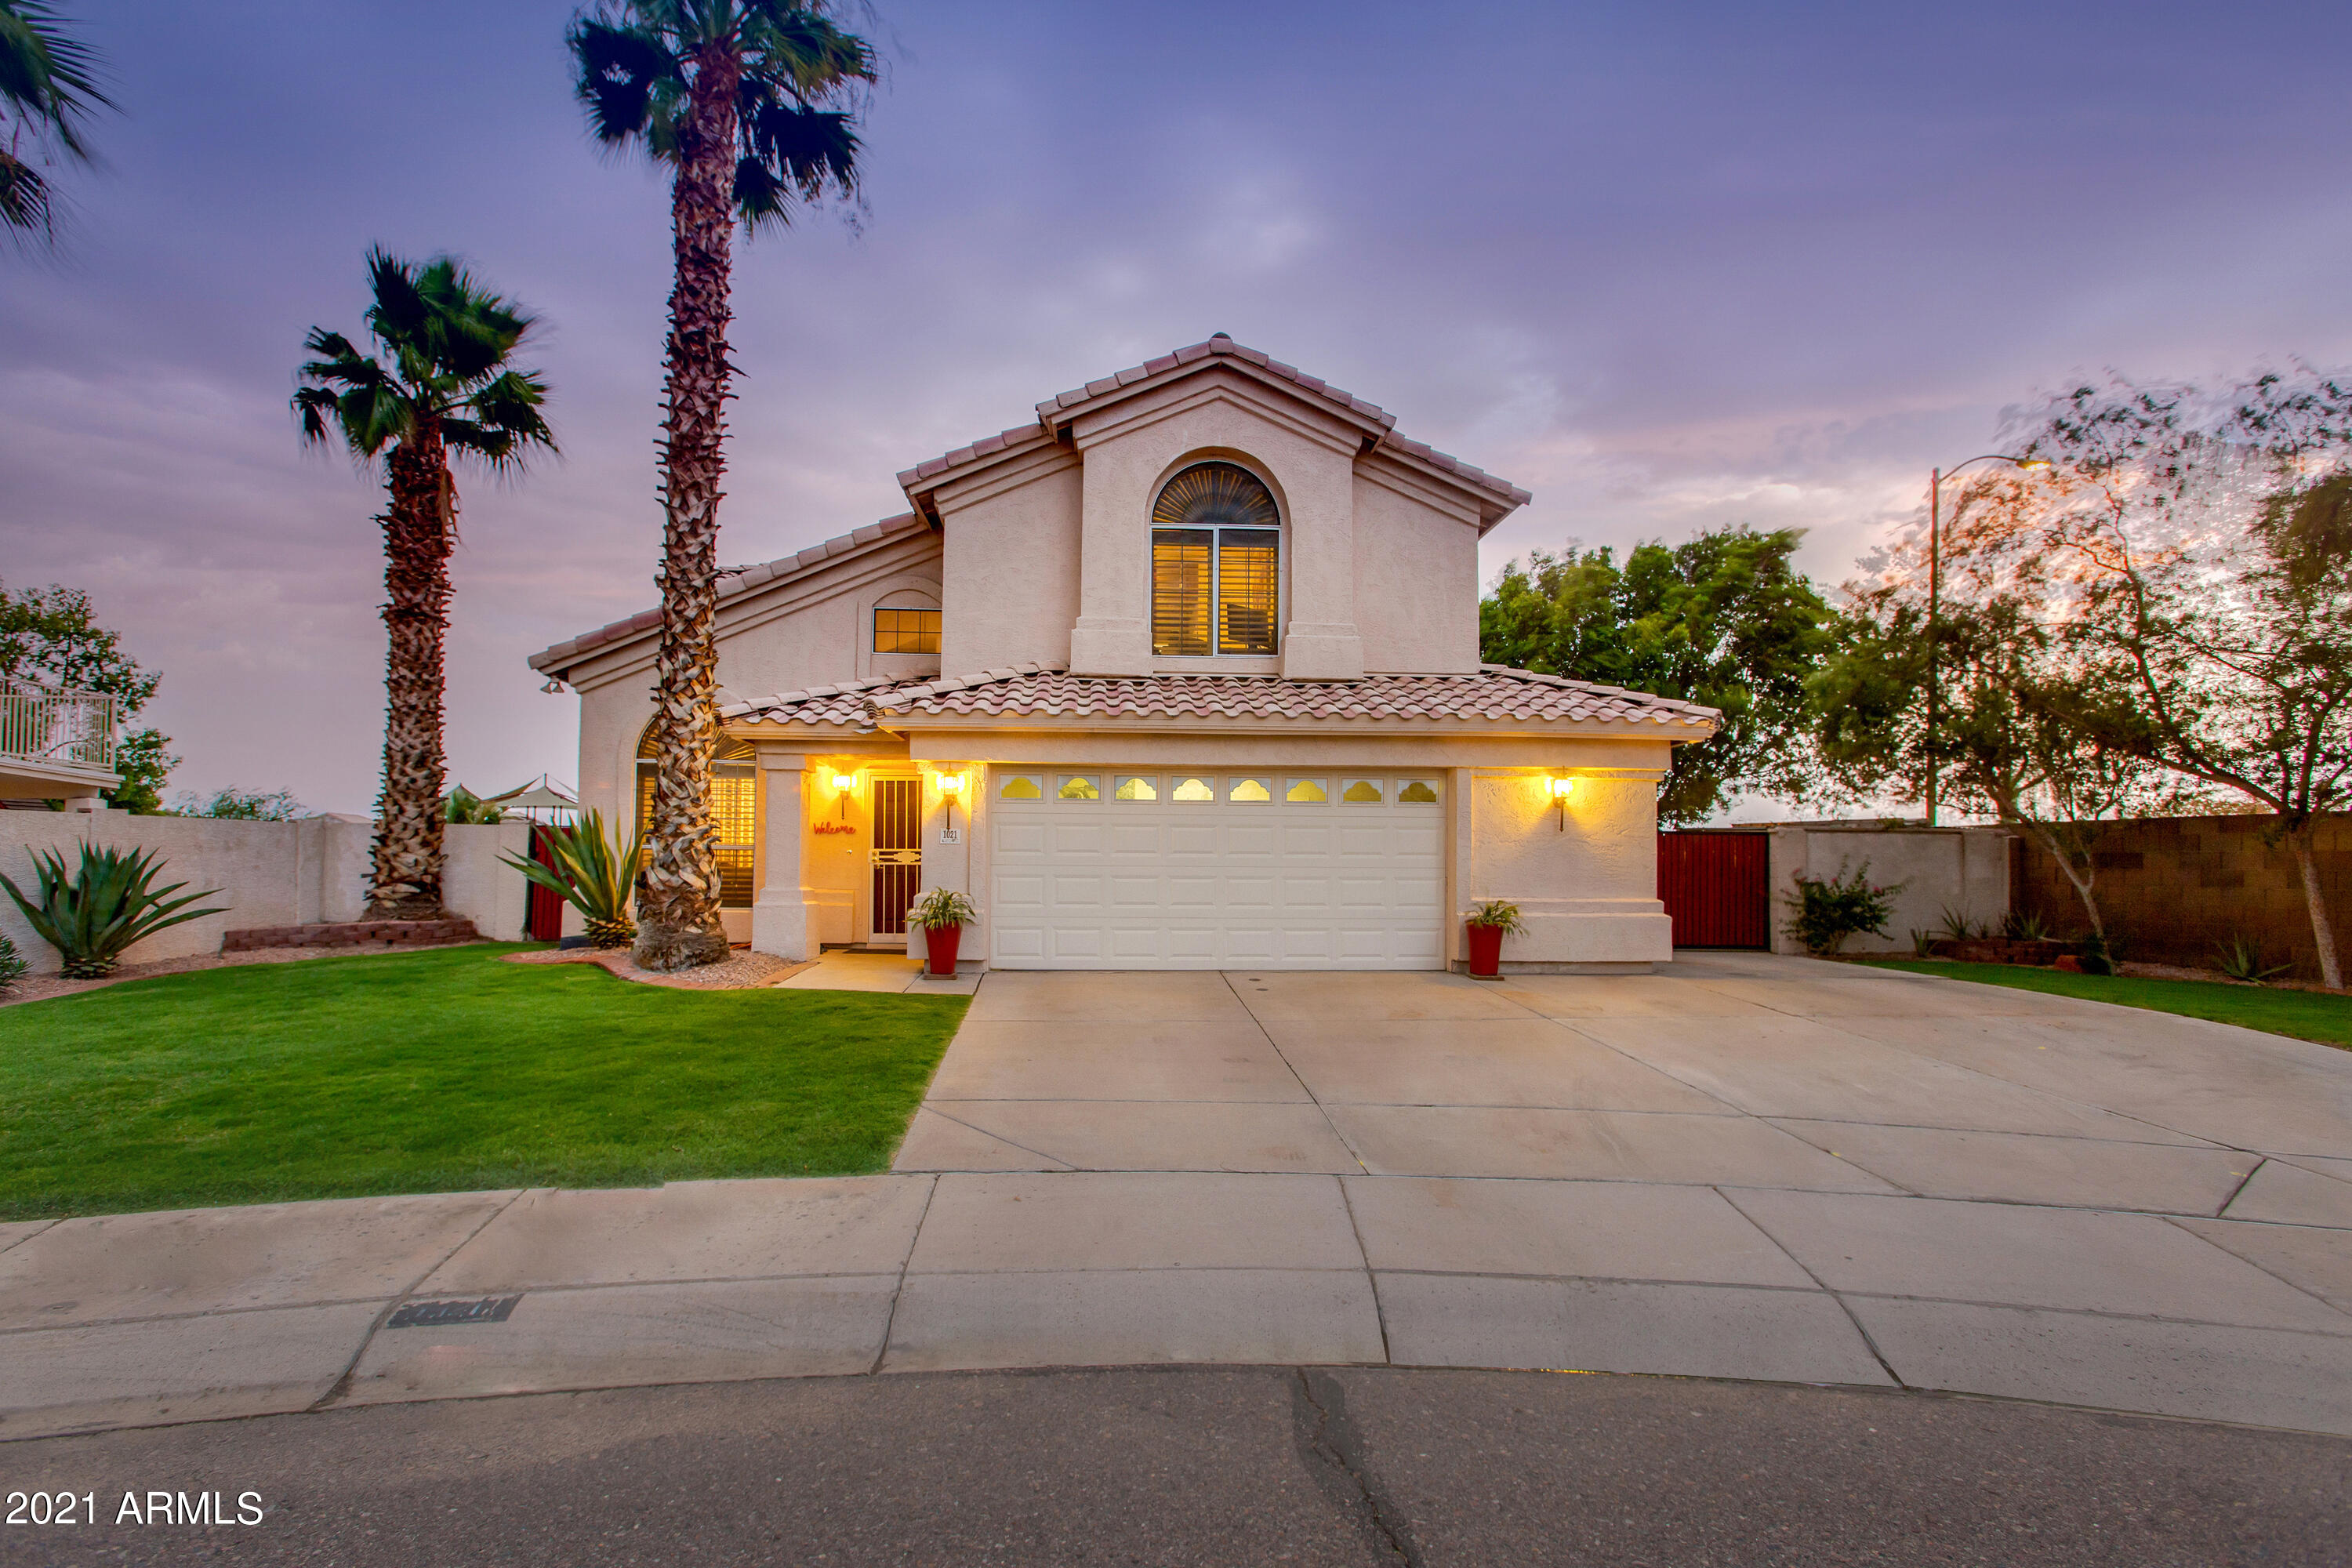 This lovingly maintained home is nestled on a quiet cul-de-sac lot in a highly desired community near Moon Valley. With easy access to popular hiking trails, Loop 101 and I-17 freeways, and all of the shopping and dining at Bell Towne Plaza, this prime location cannot be beat. Inside, you'll find an open concept with two living spaces, eat-in kitchen with granite countertops, three bedrooms, and a spacious office/loft with access to an oversized balcony overlooking the mountains. The backyard is a beautiful oasis with lush green grass, PebbleTec pool and spa, outdoor shower, a gazebo with built-in BBQ grill, fruit trees, garden beds, and an RV gate. Enjoy the convenience of having Moonlight mini park just around the corner! Please see the full list of owner upgrades in the documents tab.